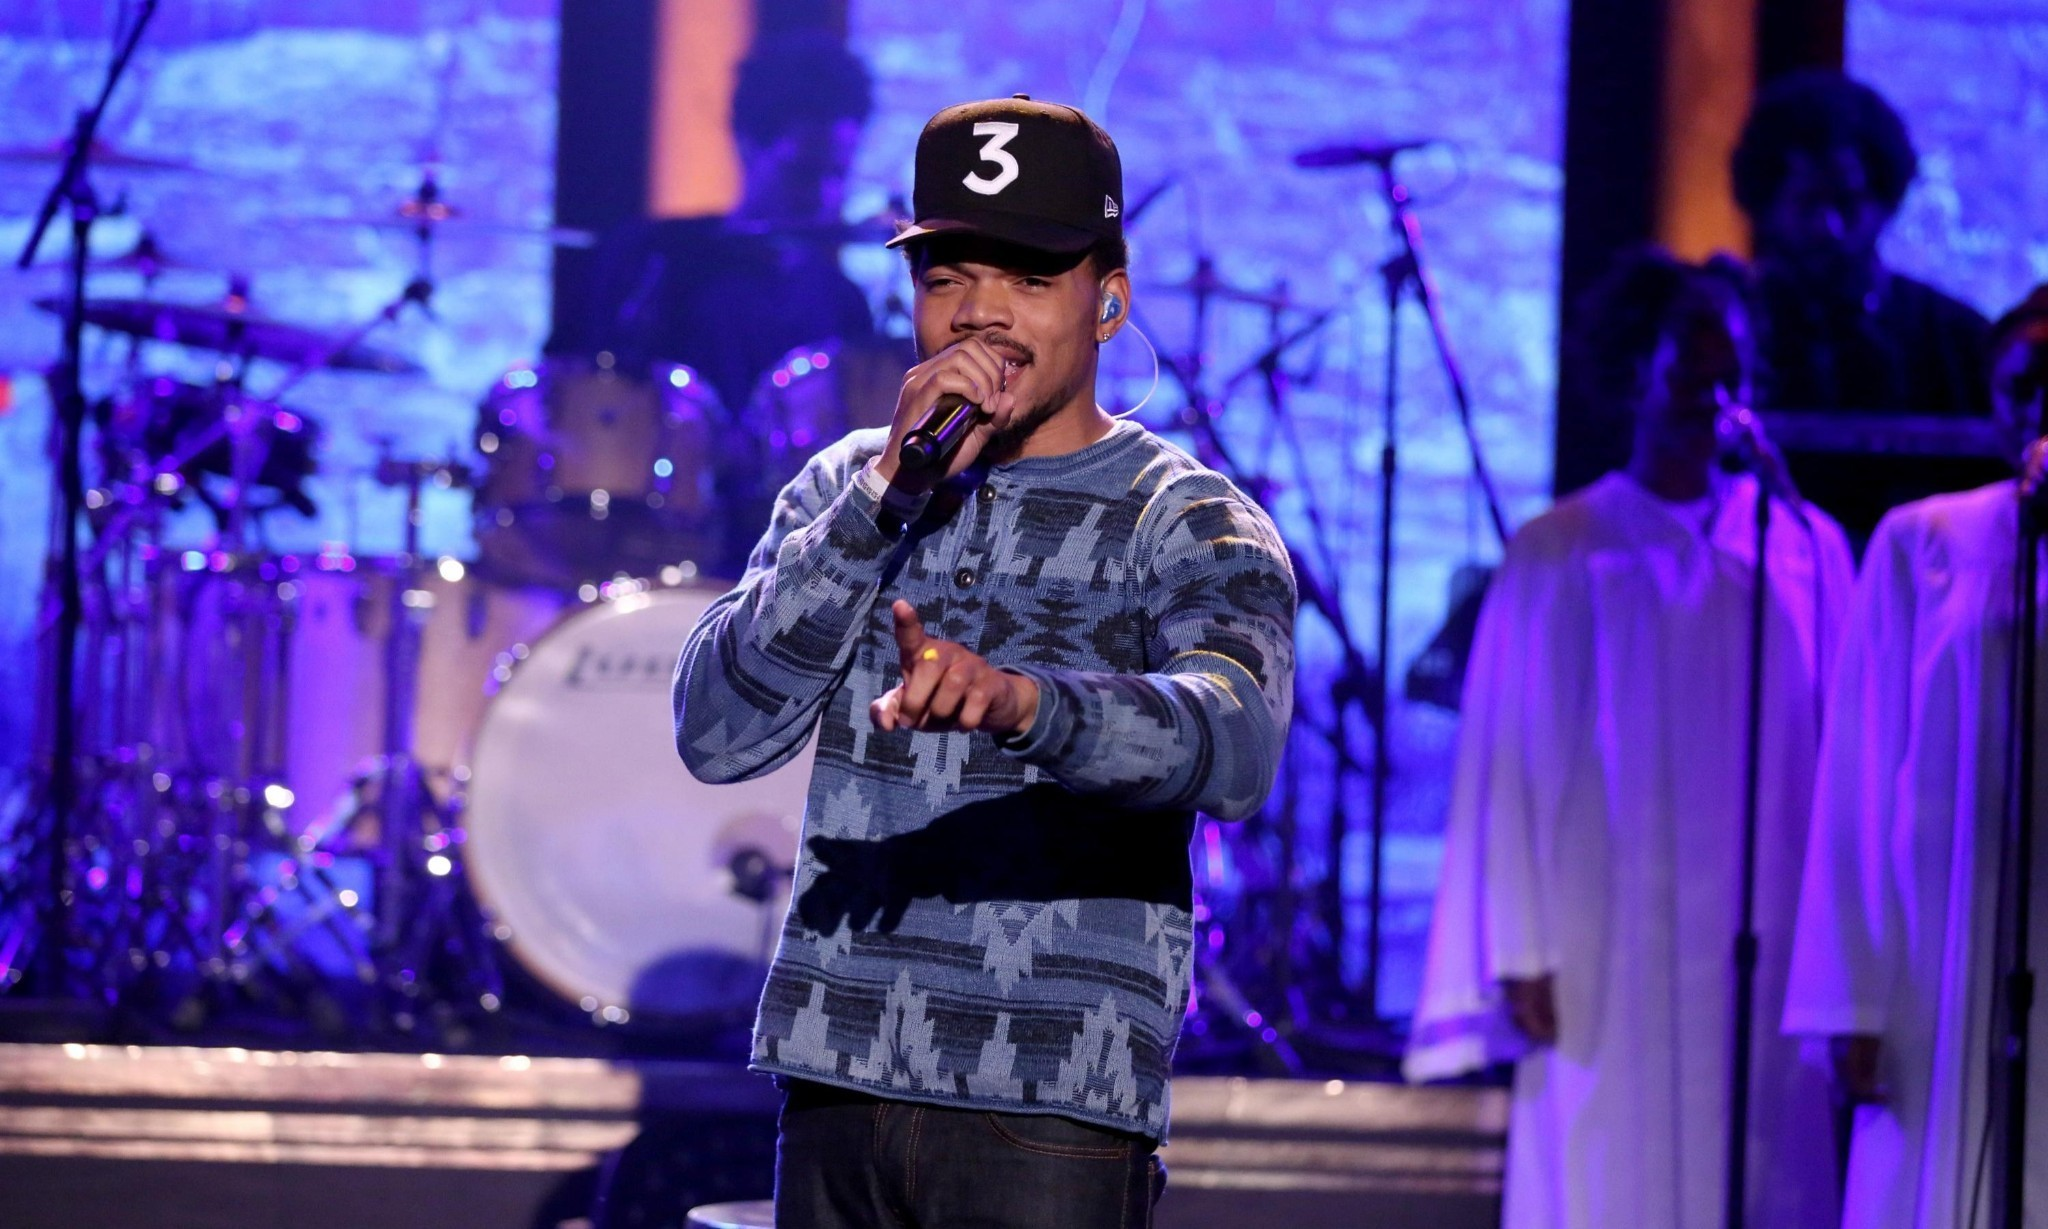 Chance The Rapper is the world's first truly independent artist